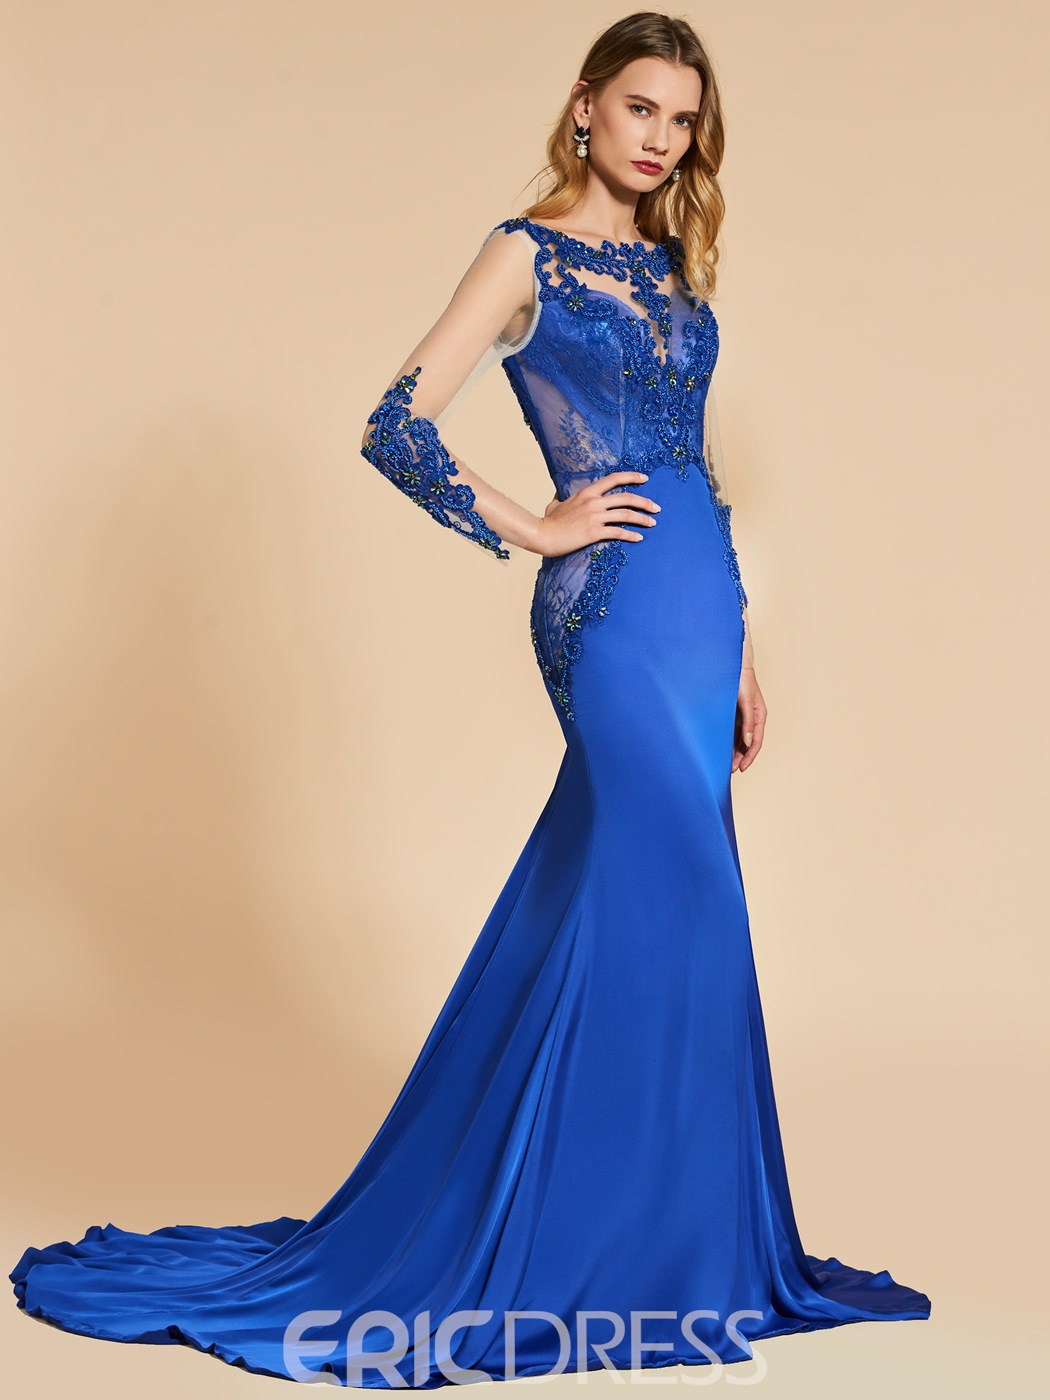 1d3bbf43bf3 Ericdress Mermaid Applique Beaded Backless Evening Dress With Long ...